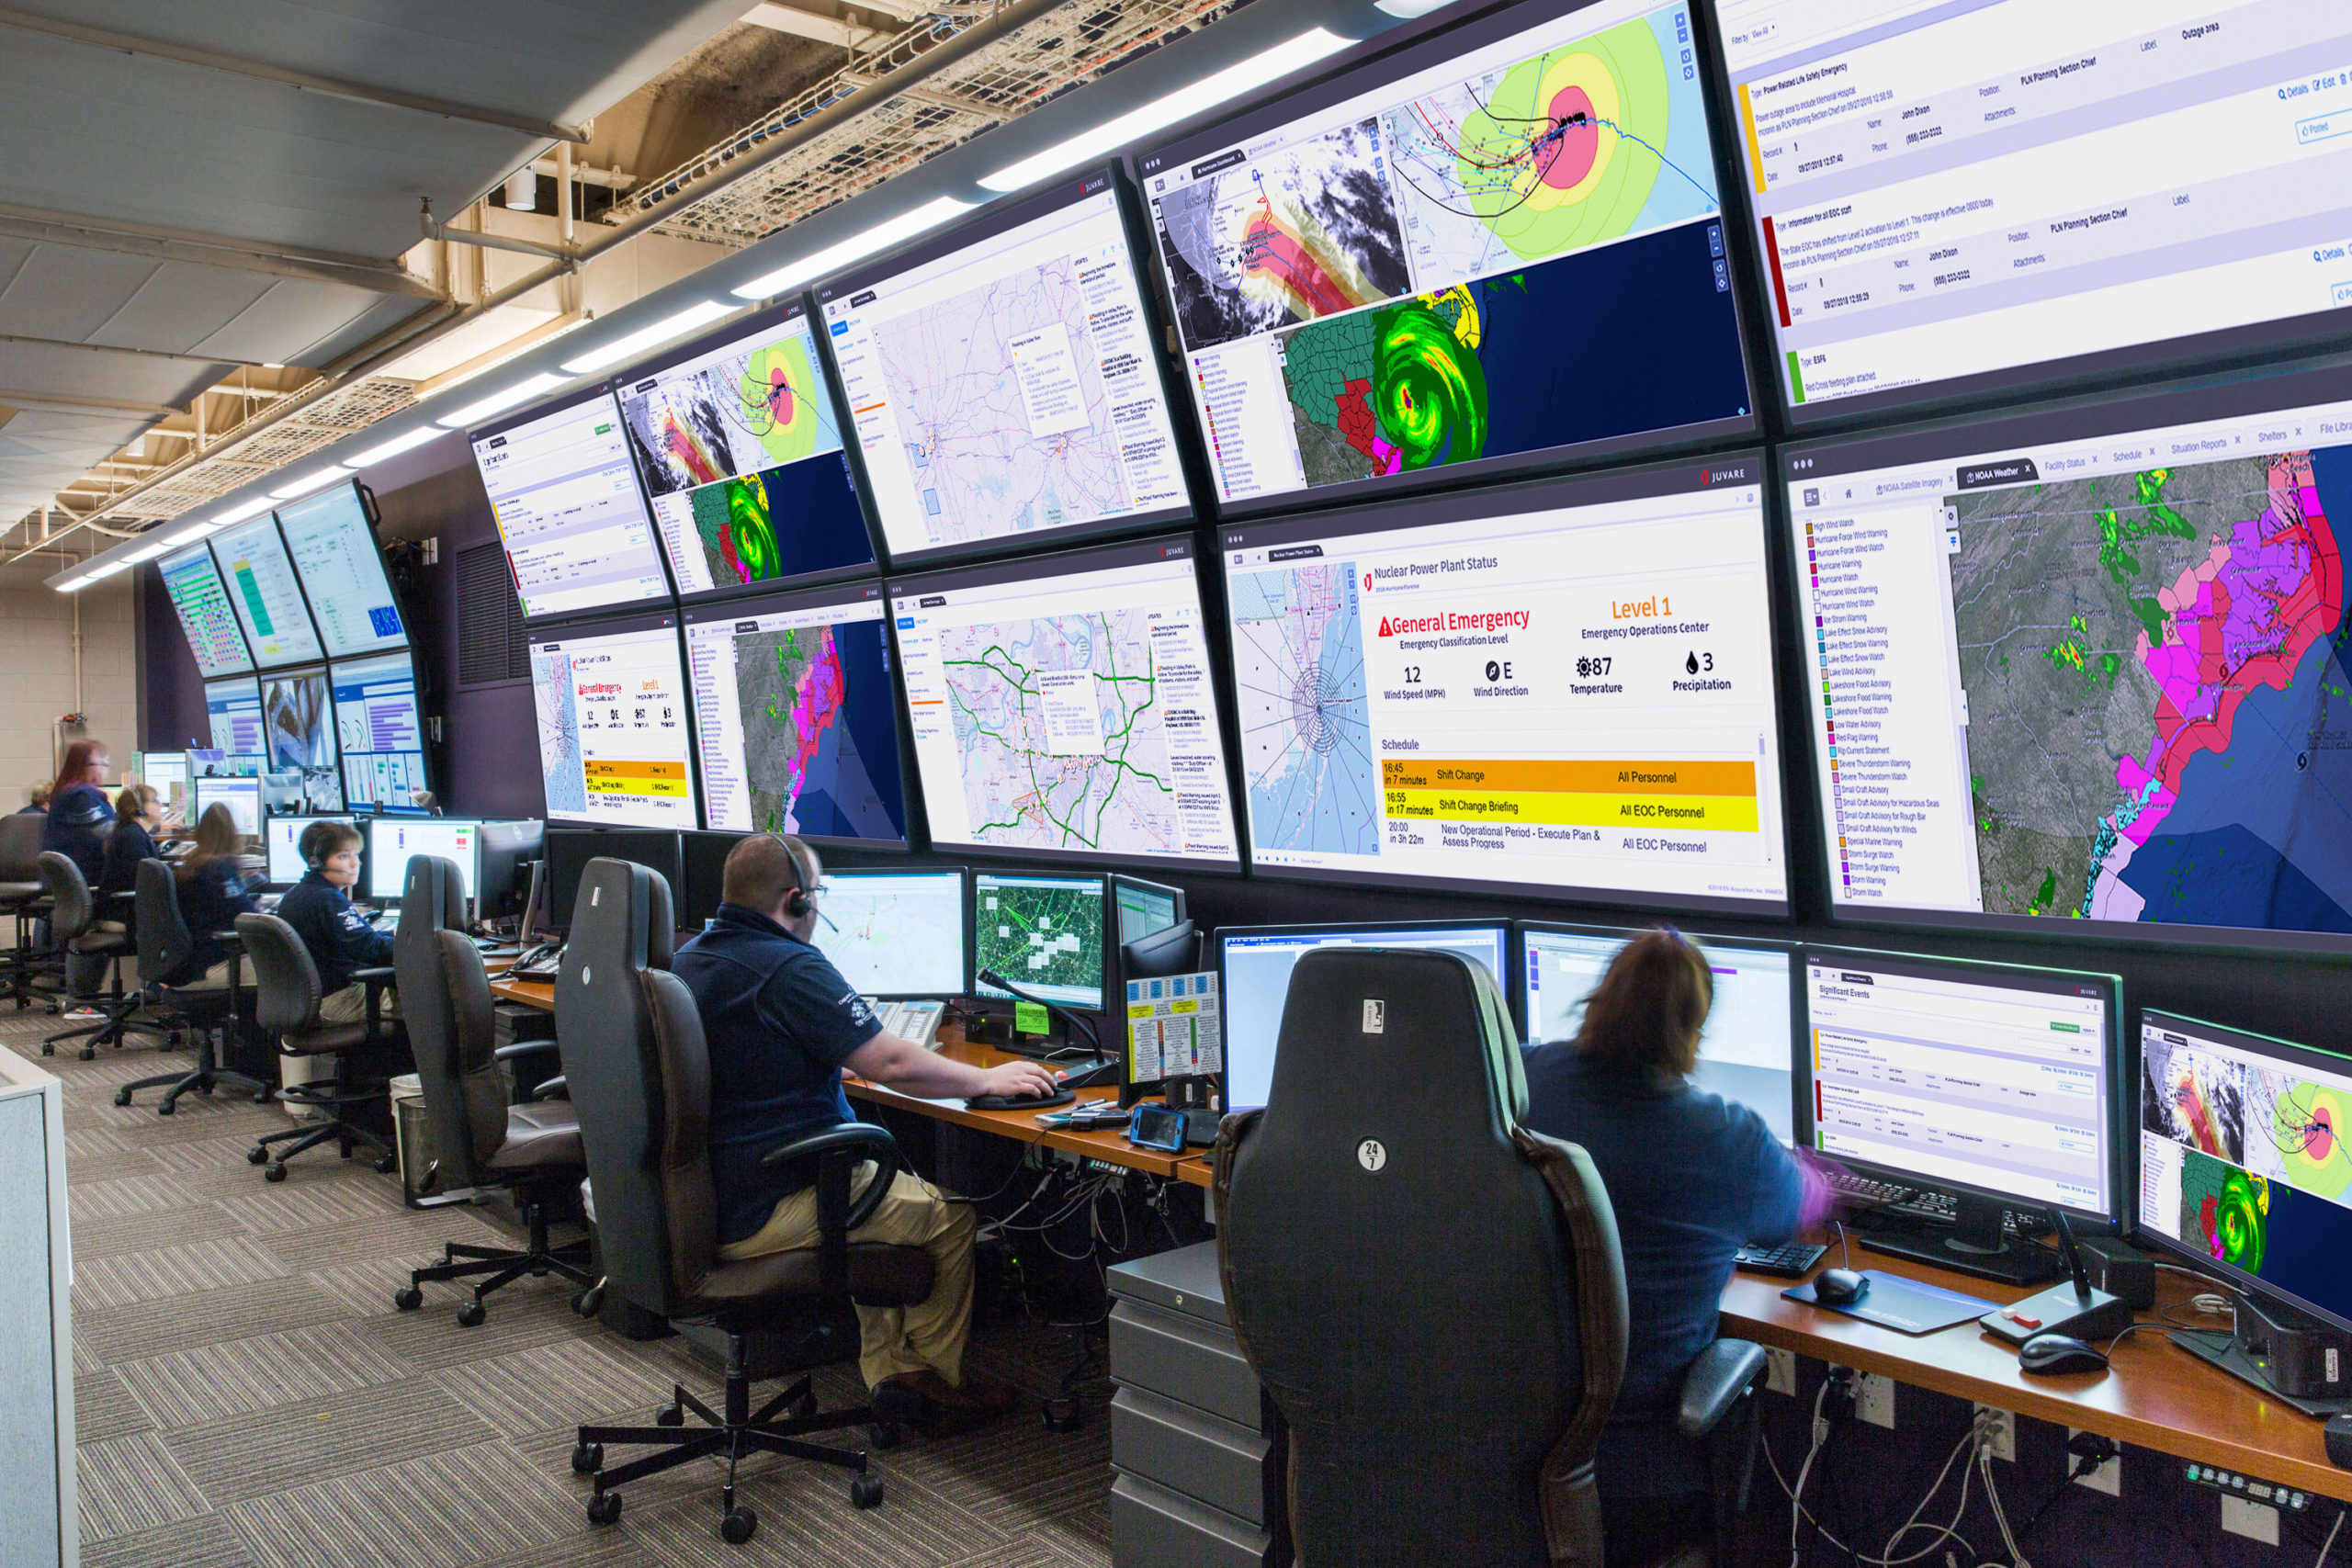 eoc emergency operations center with webeoc screenshots on monitors